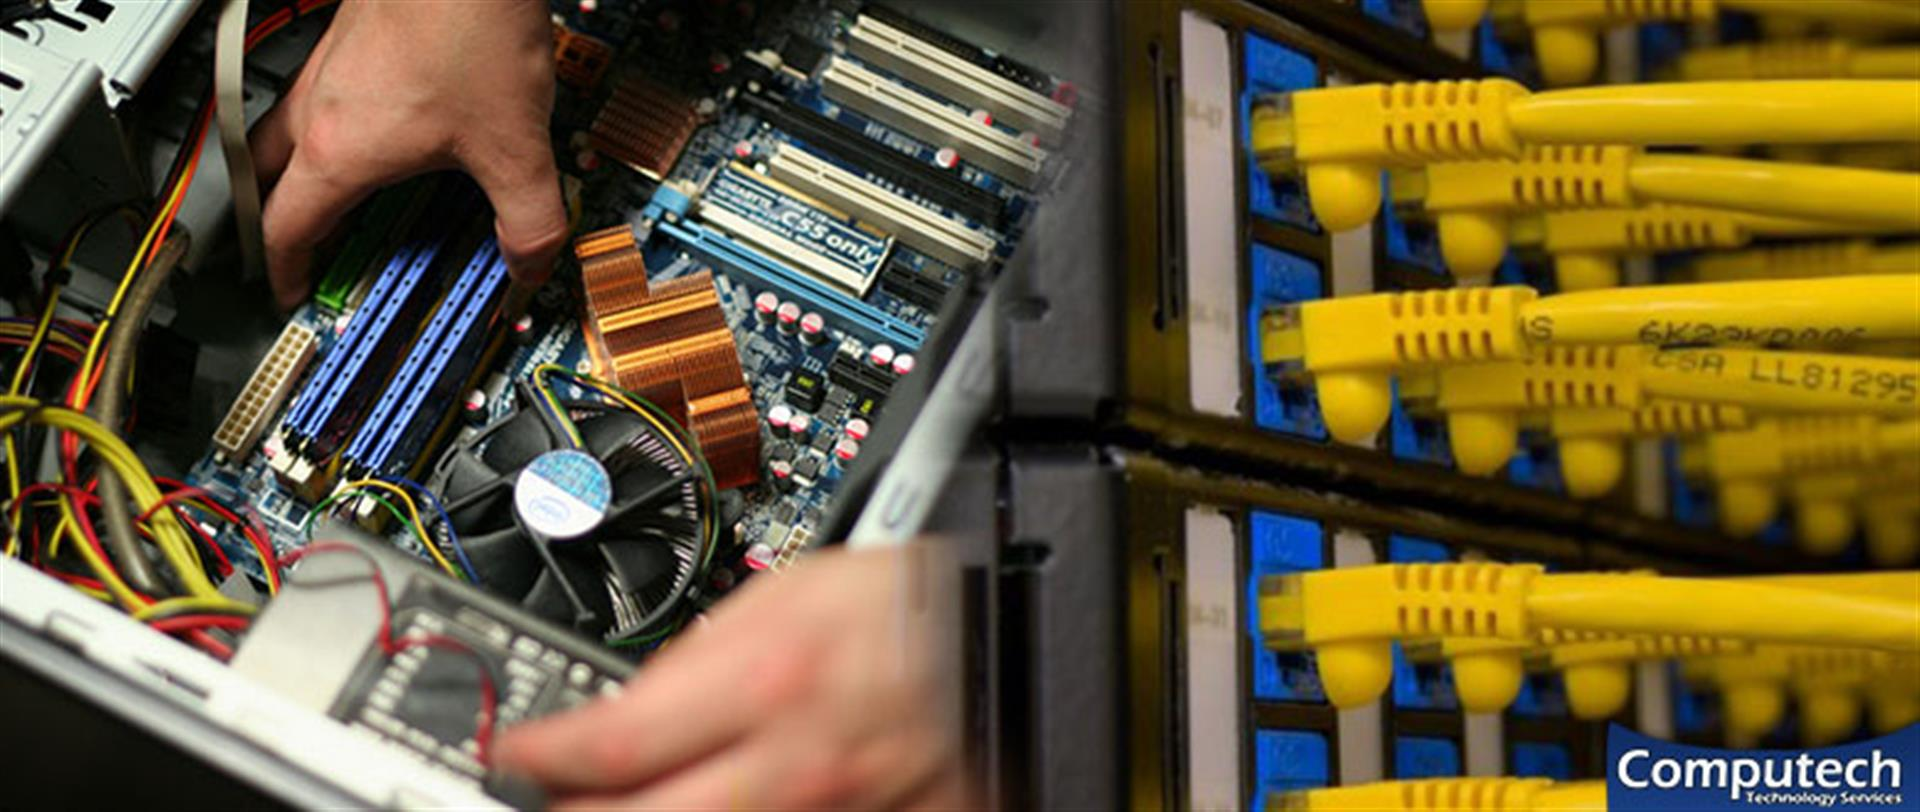 Stephens City Virginia Onsite PC & Printer Repairs, Networks, Voice & Data Cabling Services